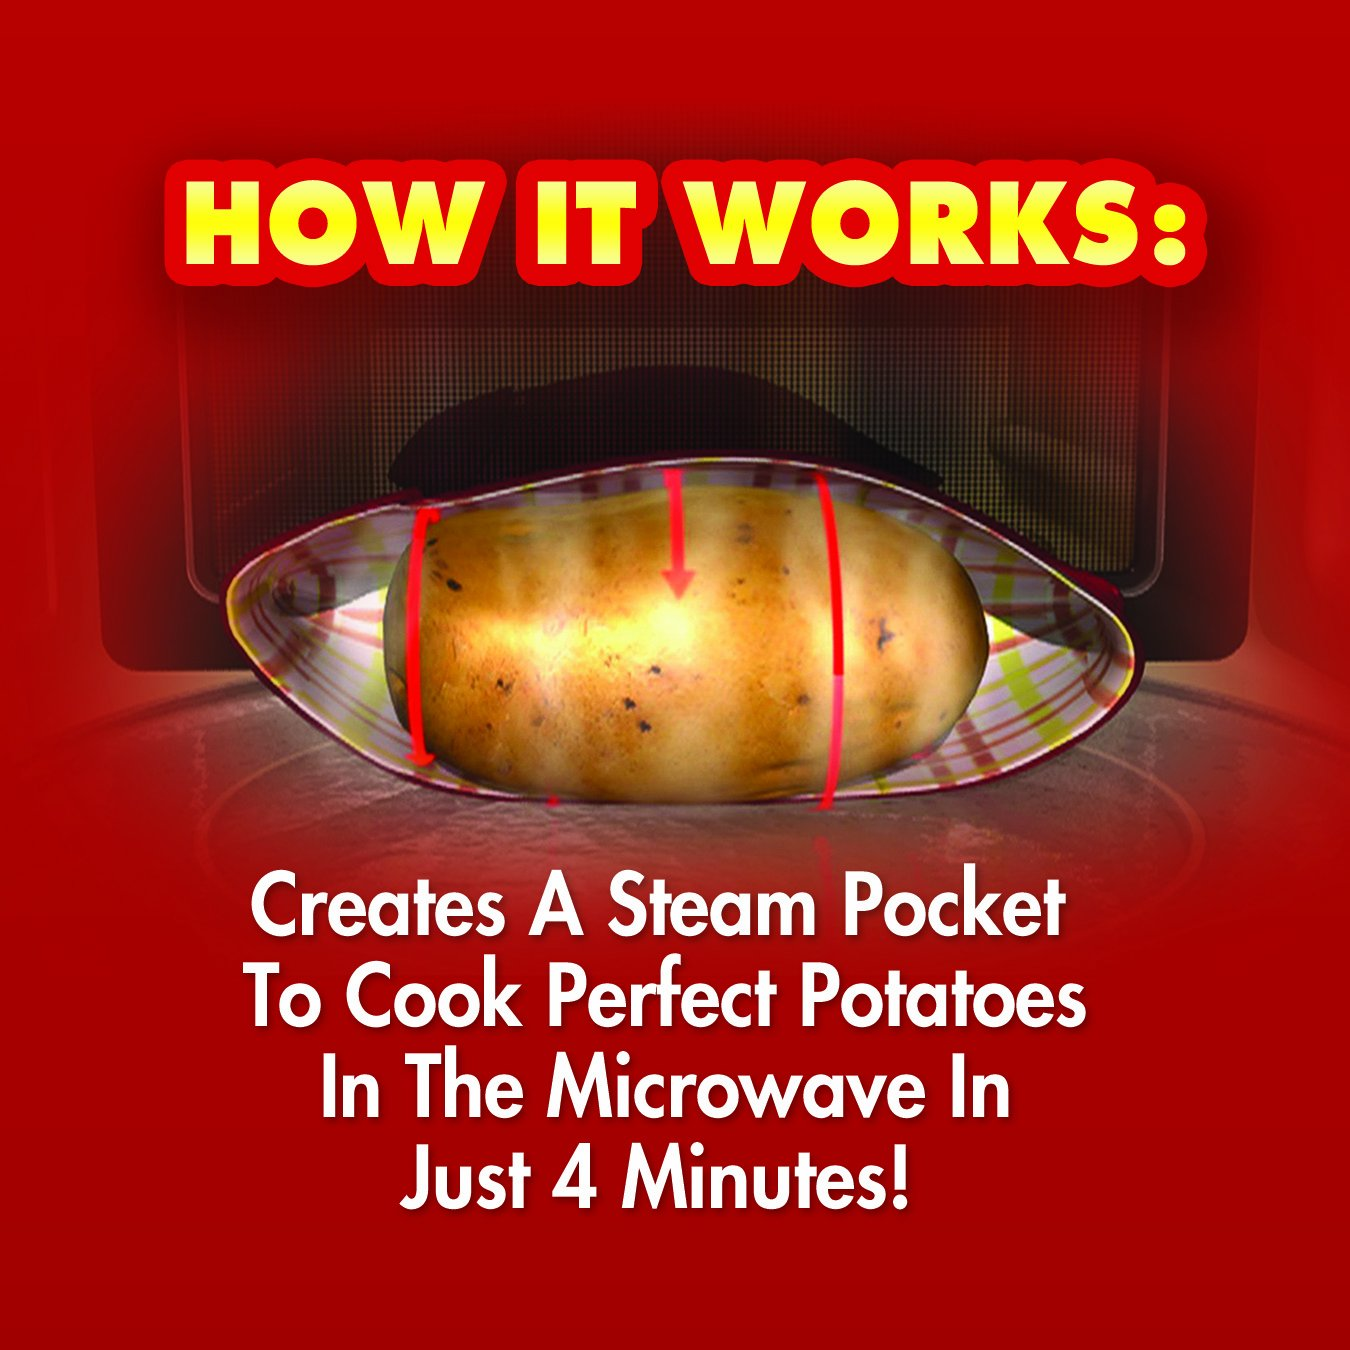 Amazon: Potato Express Microwave Potato Cooker, Perfect Potatoes In  Just 4 Minutes!  As Seen On Tv: Home Decor Products: Kitchen & Dining